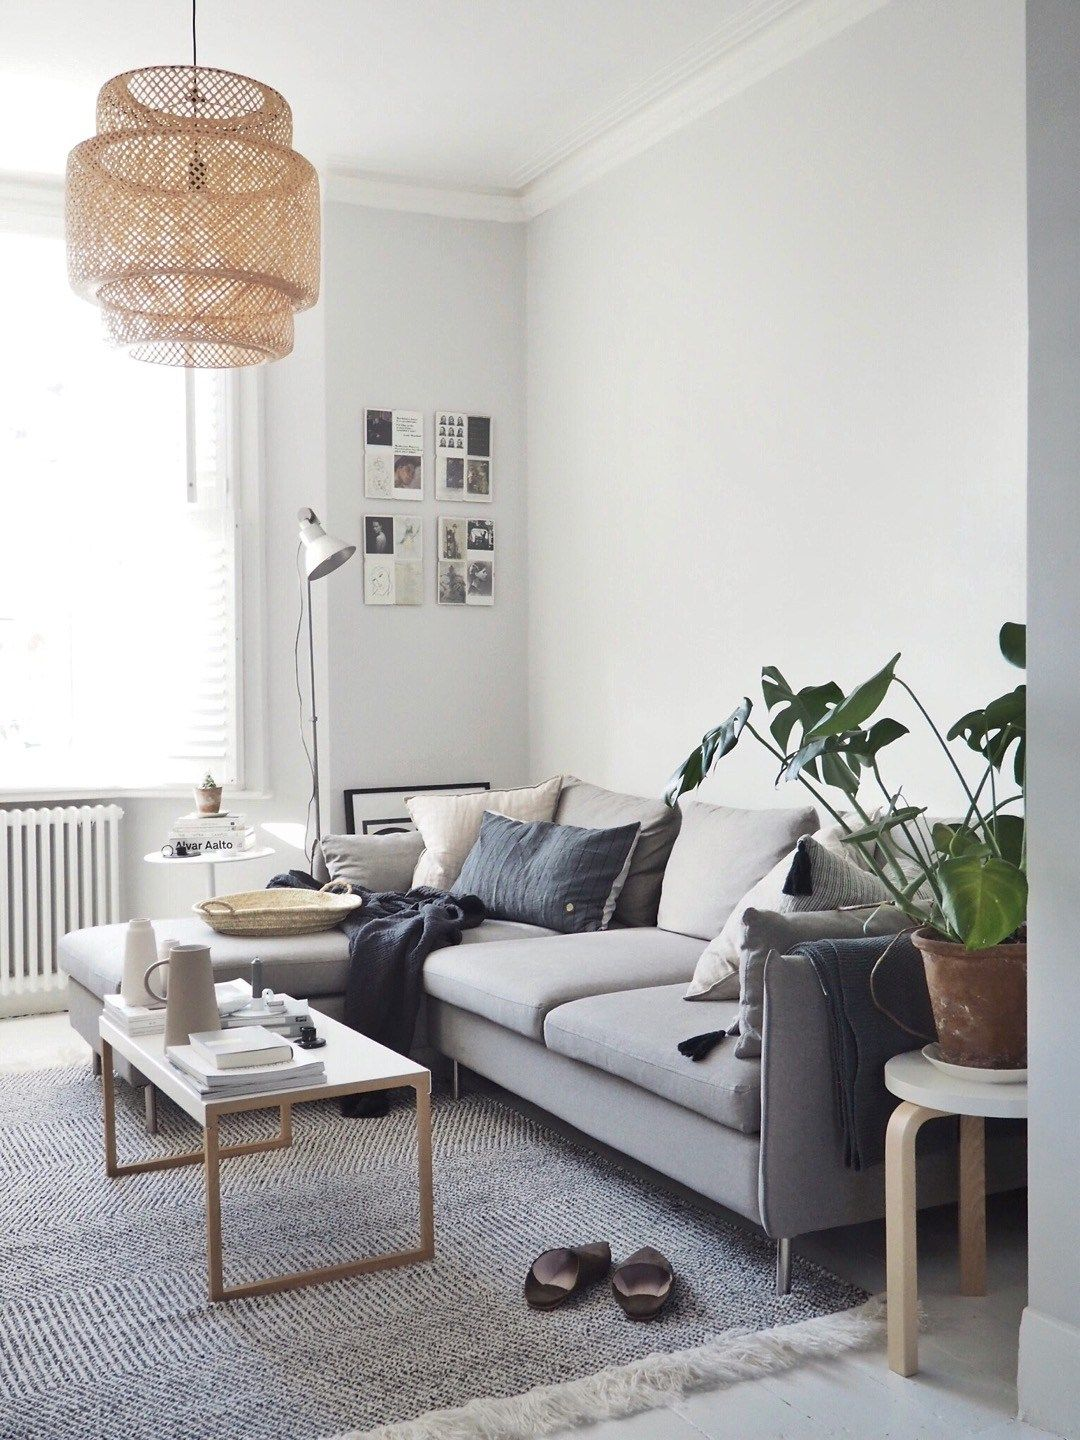 A Light Scandi Style Living Room With Painted White Floorboards And A Grey Co Small Space Living Room Scandinavian Design Living Room Living Room Scandinavian